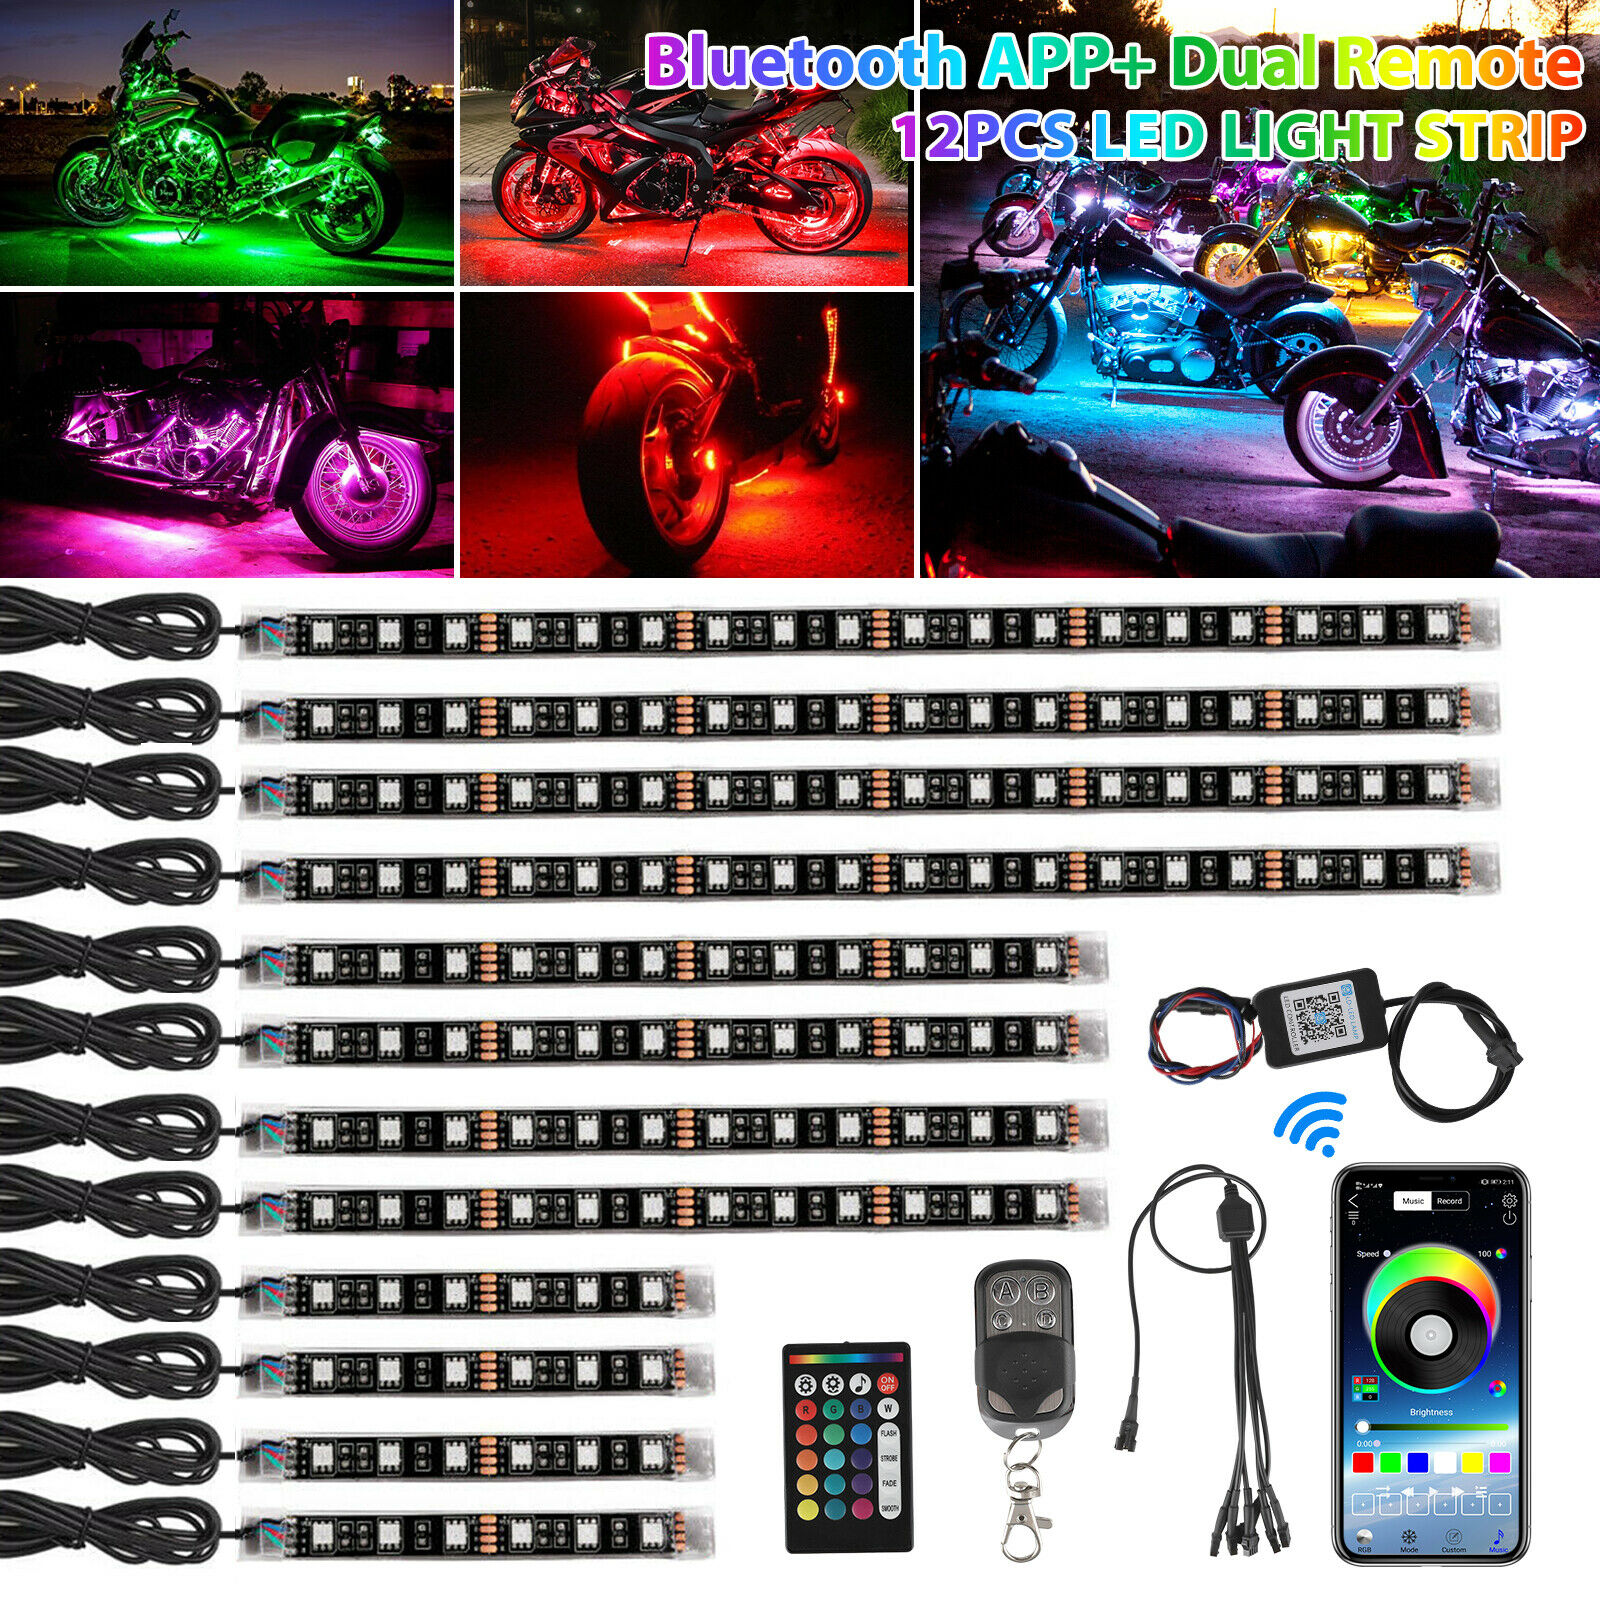 12pcs Motorcycle LED Neon Strip Lamp RGB Multicolor Under Glow Lights APP Remote Control 5050SMD LED Car Decorative Light Strip